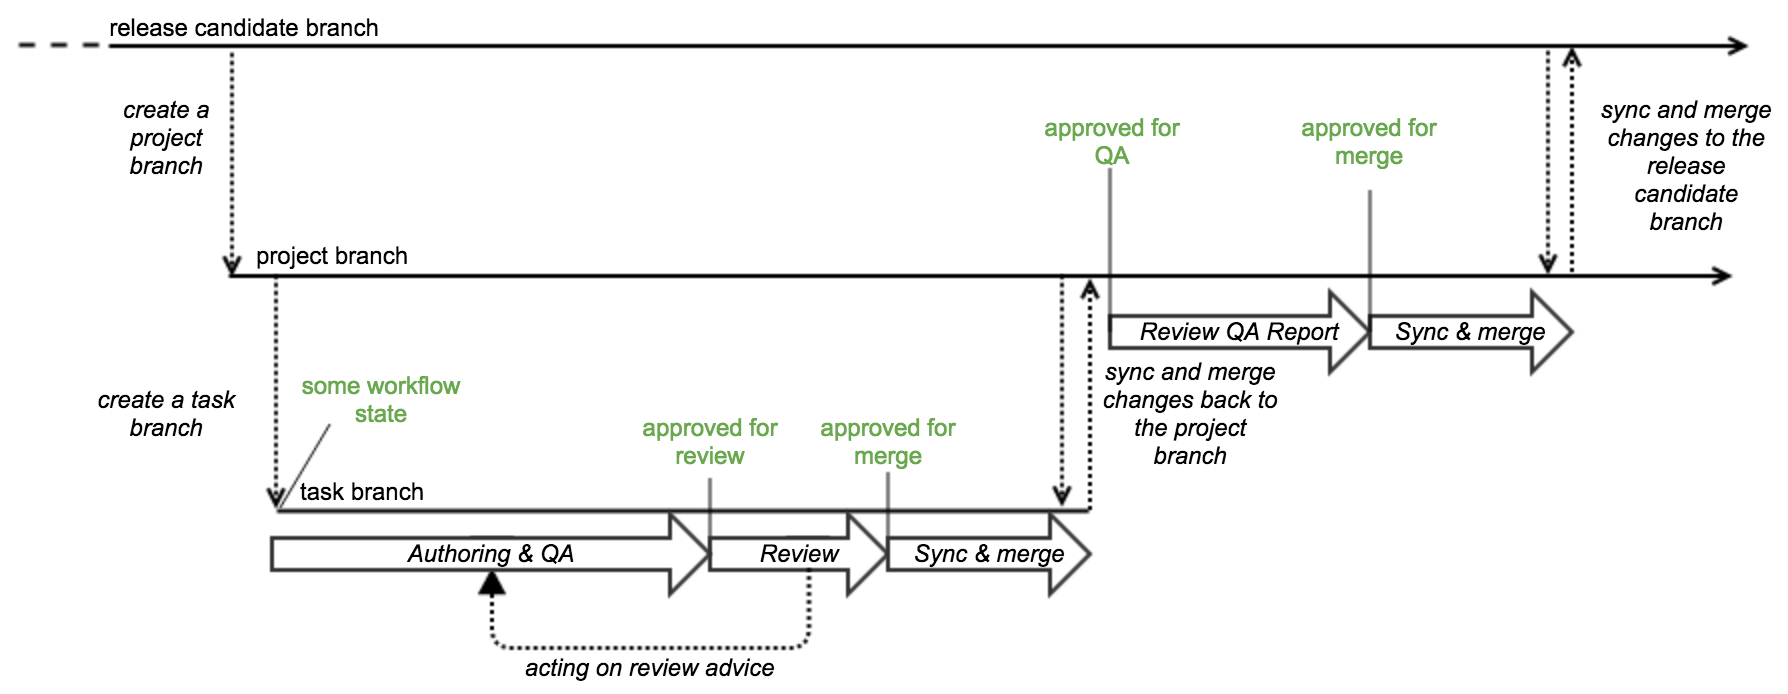 Task workflow traceable to jira projects ihtsdo authoring tooling therefore the diagram shows only examples where workflow states might transition when implemented the workflow states will likely be different to those ccuart Choice Image